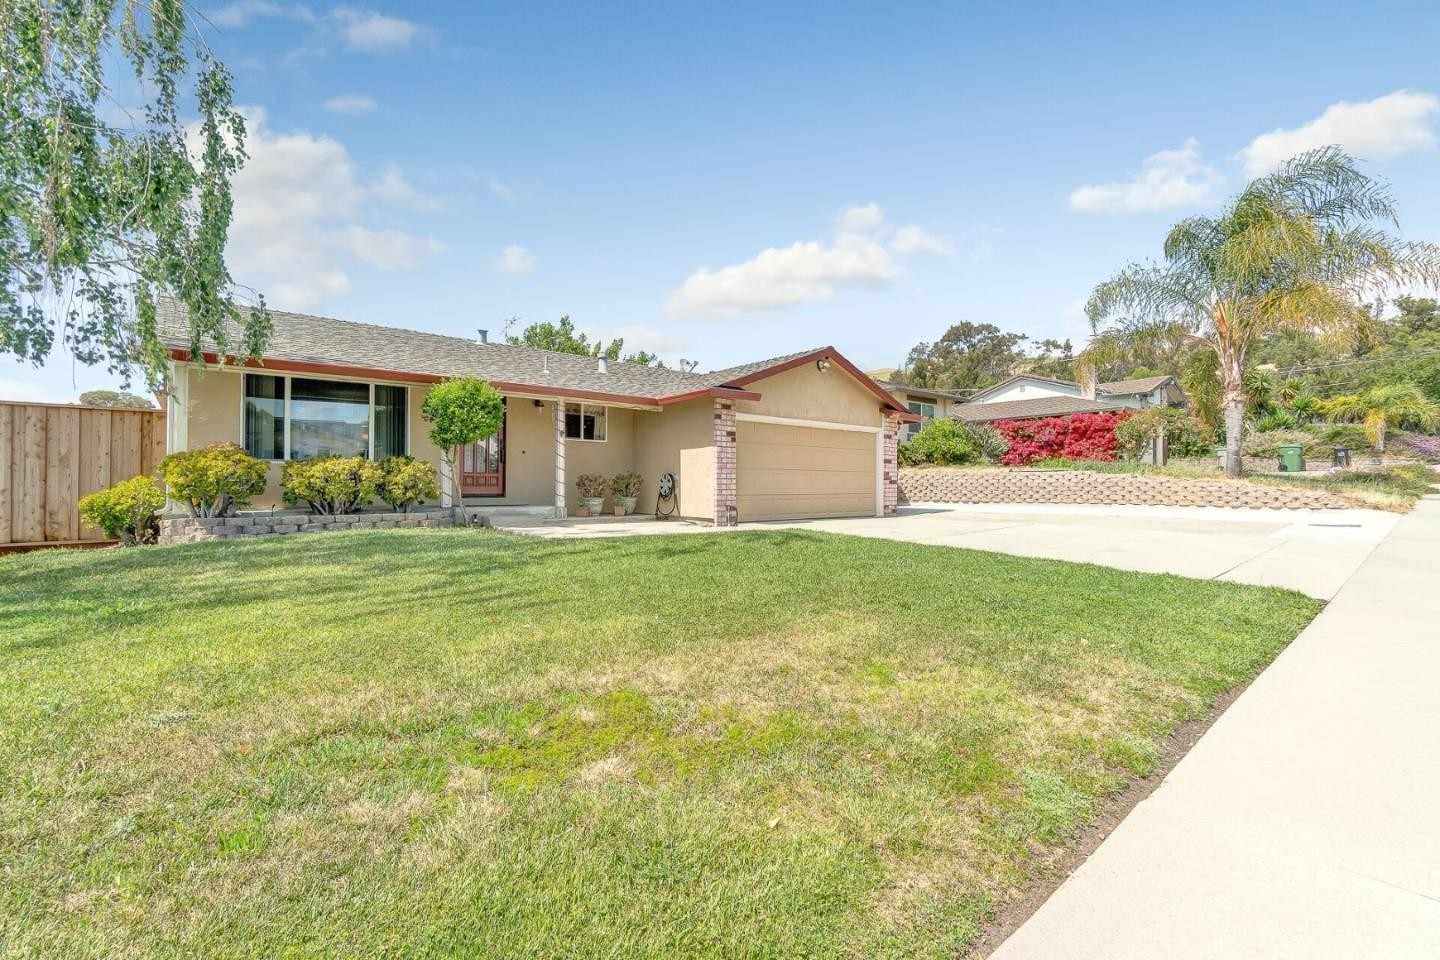 Single Family Home for Sale at Piedmont, San Jose, CA 95132